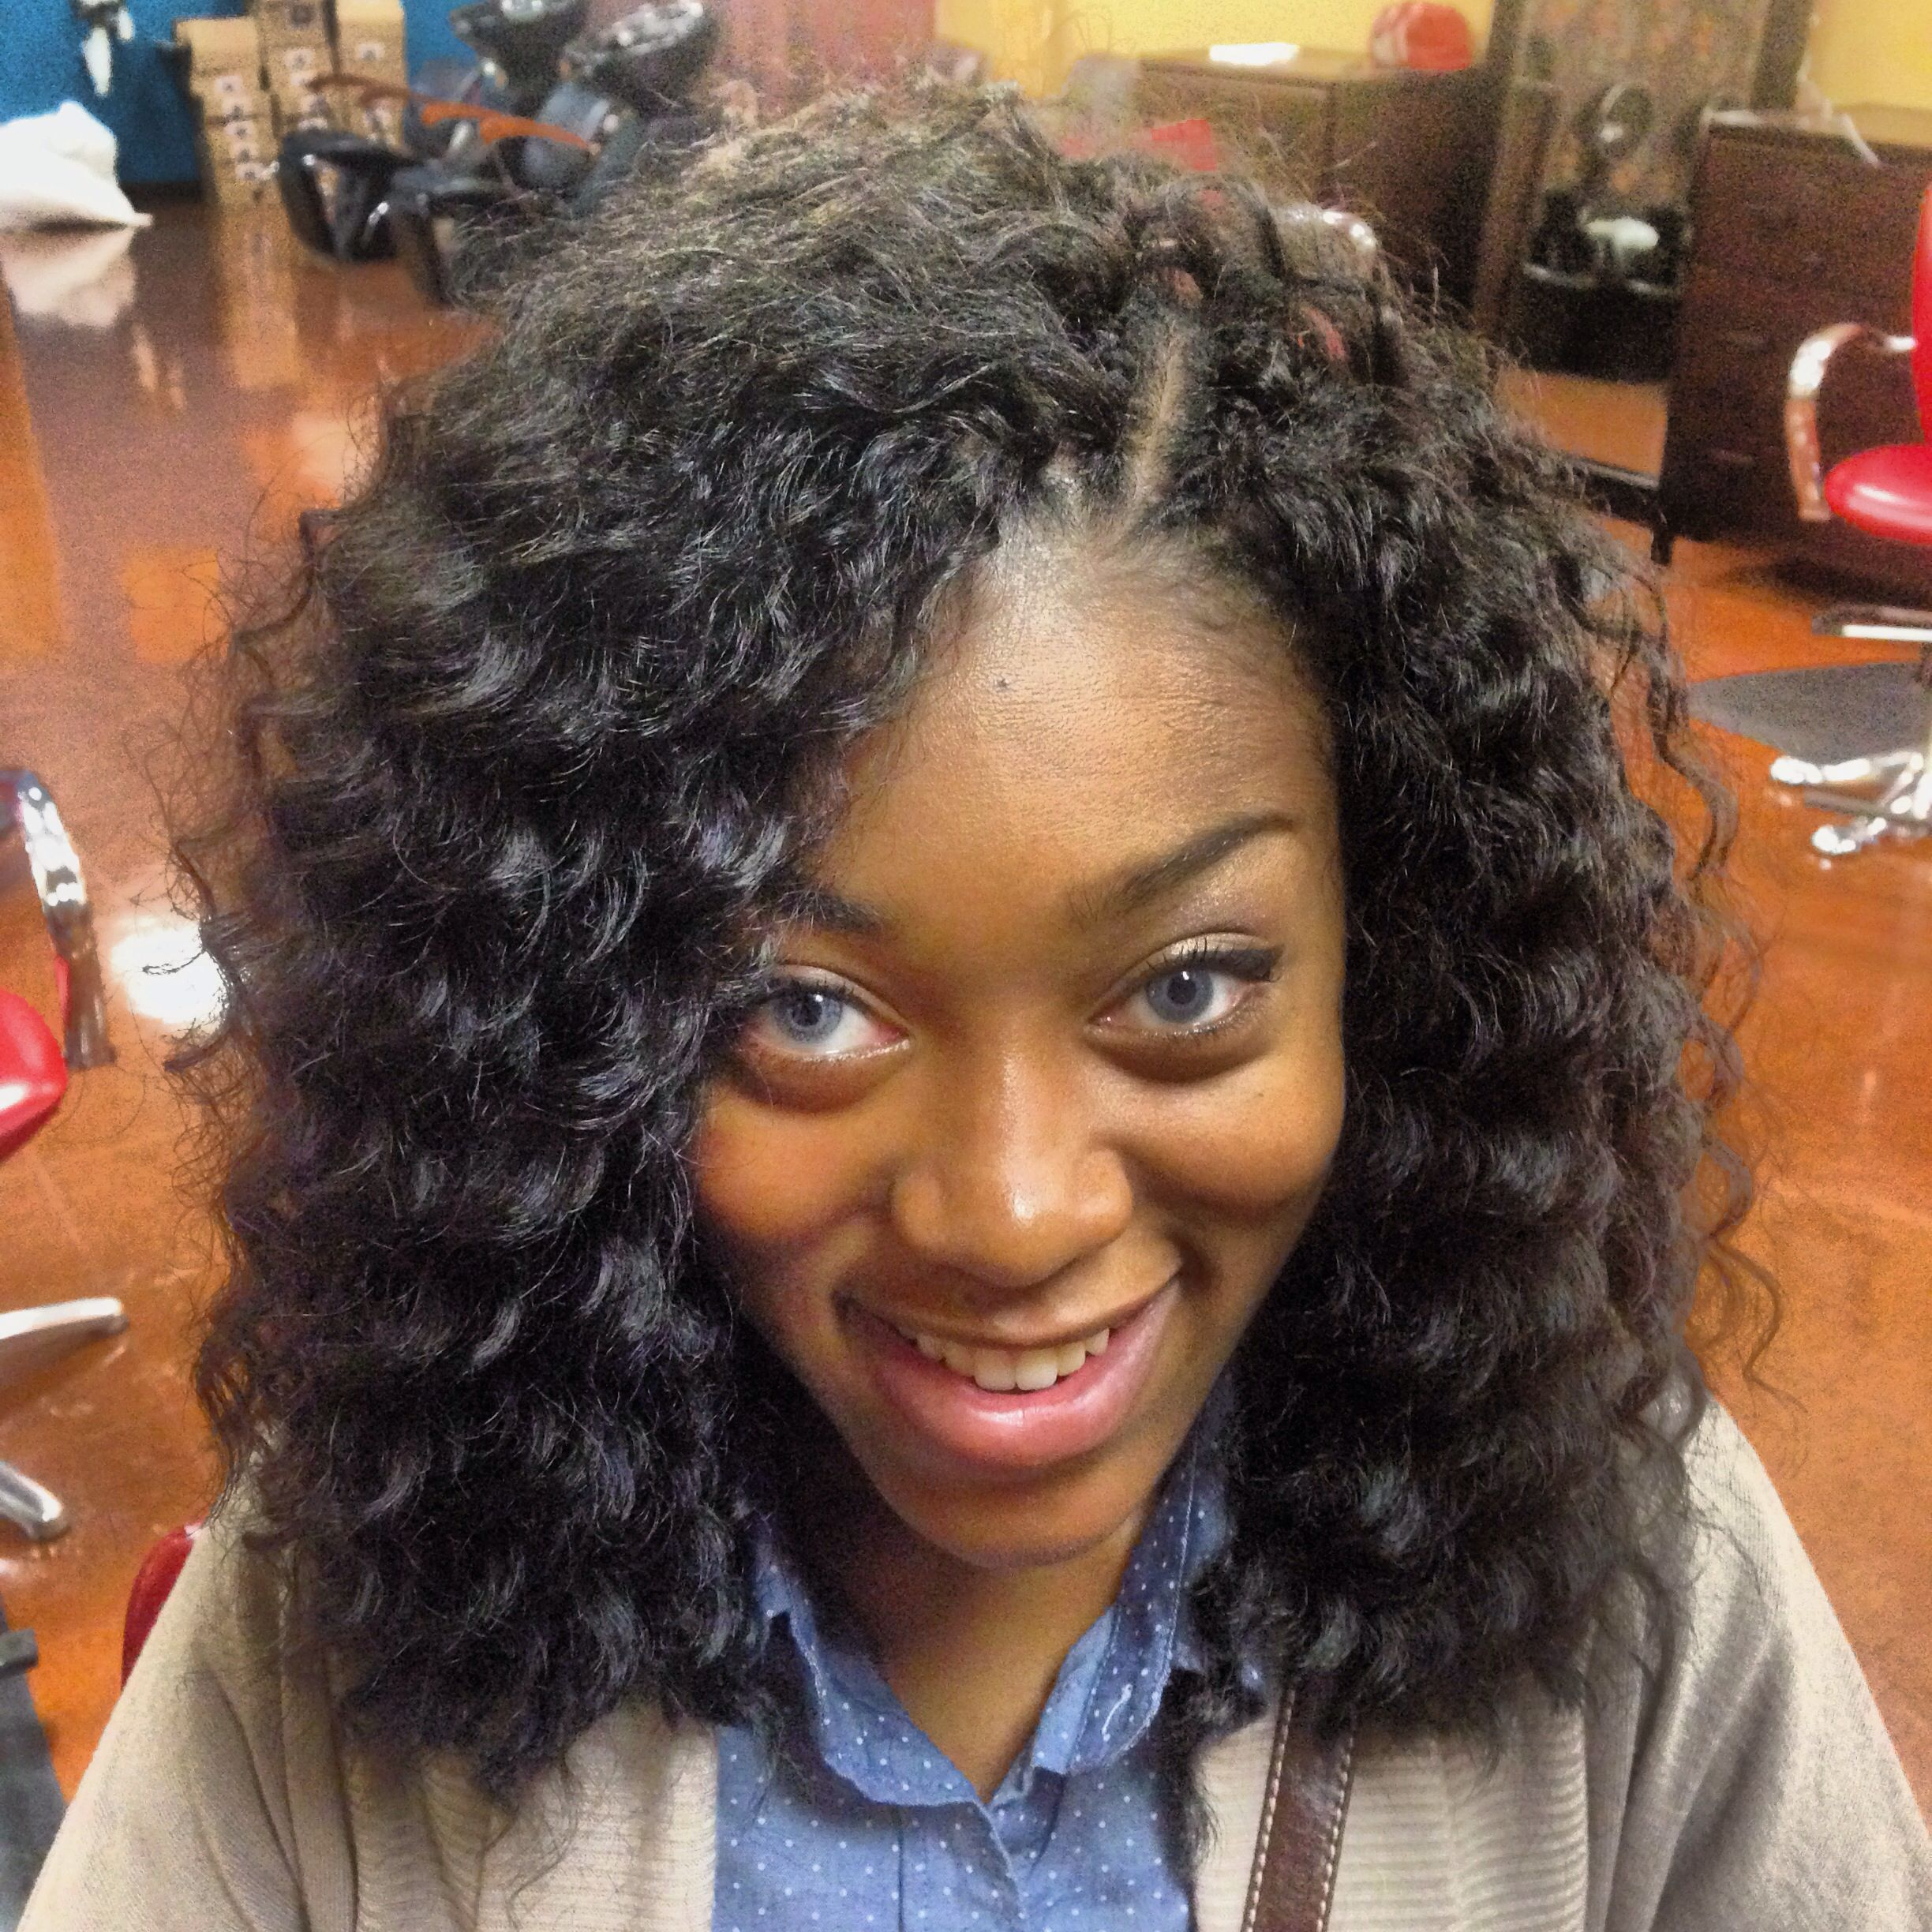 latch hook hair styles crochet braids latch stitch weaving by takeisha at a 1339